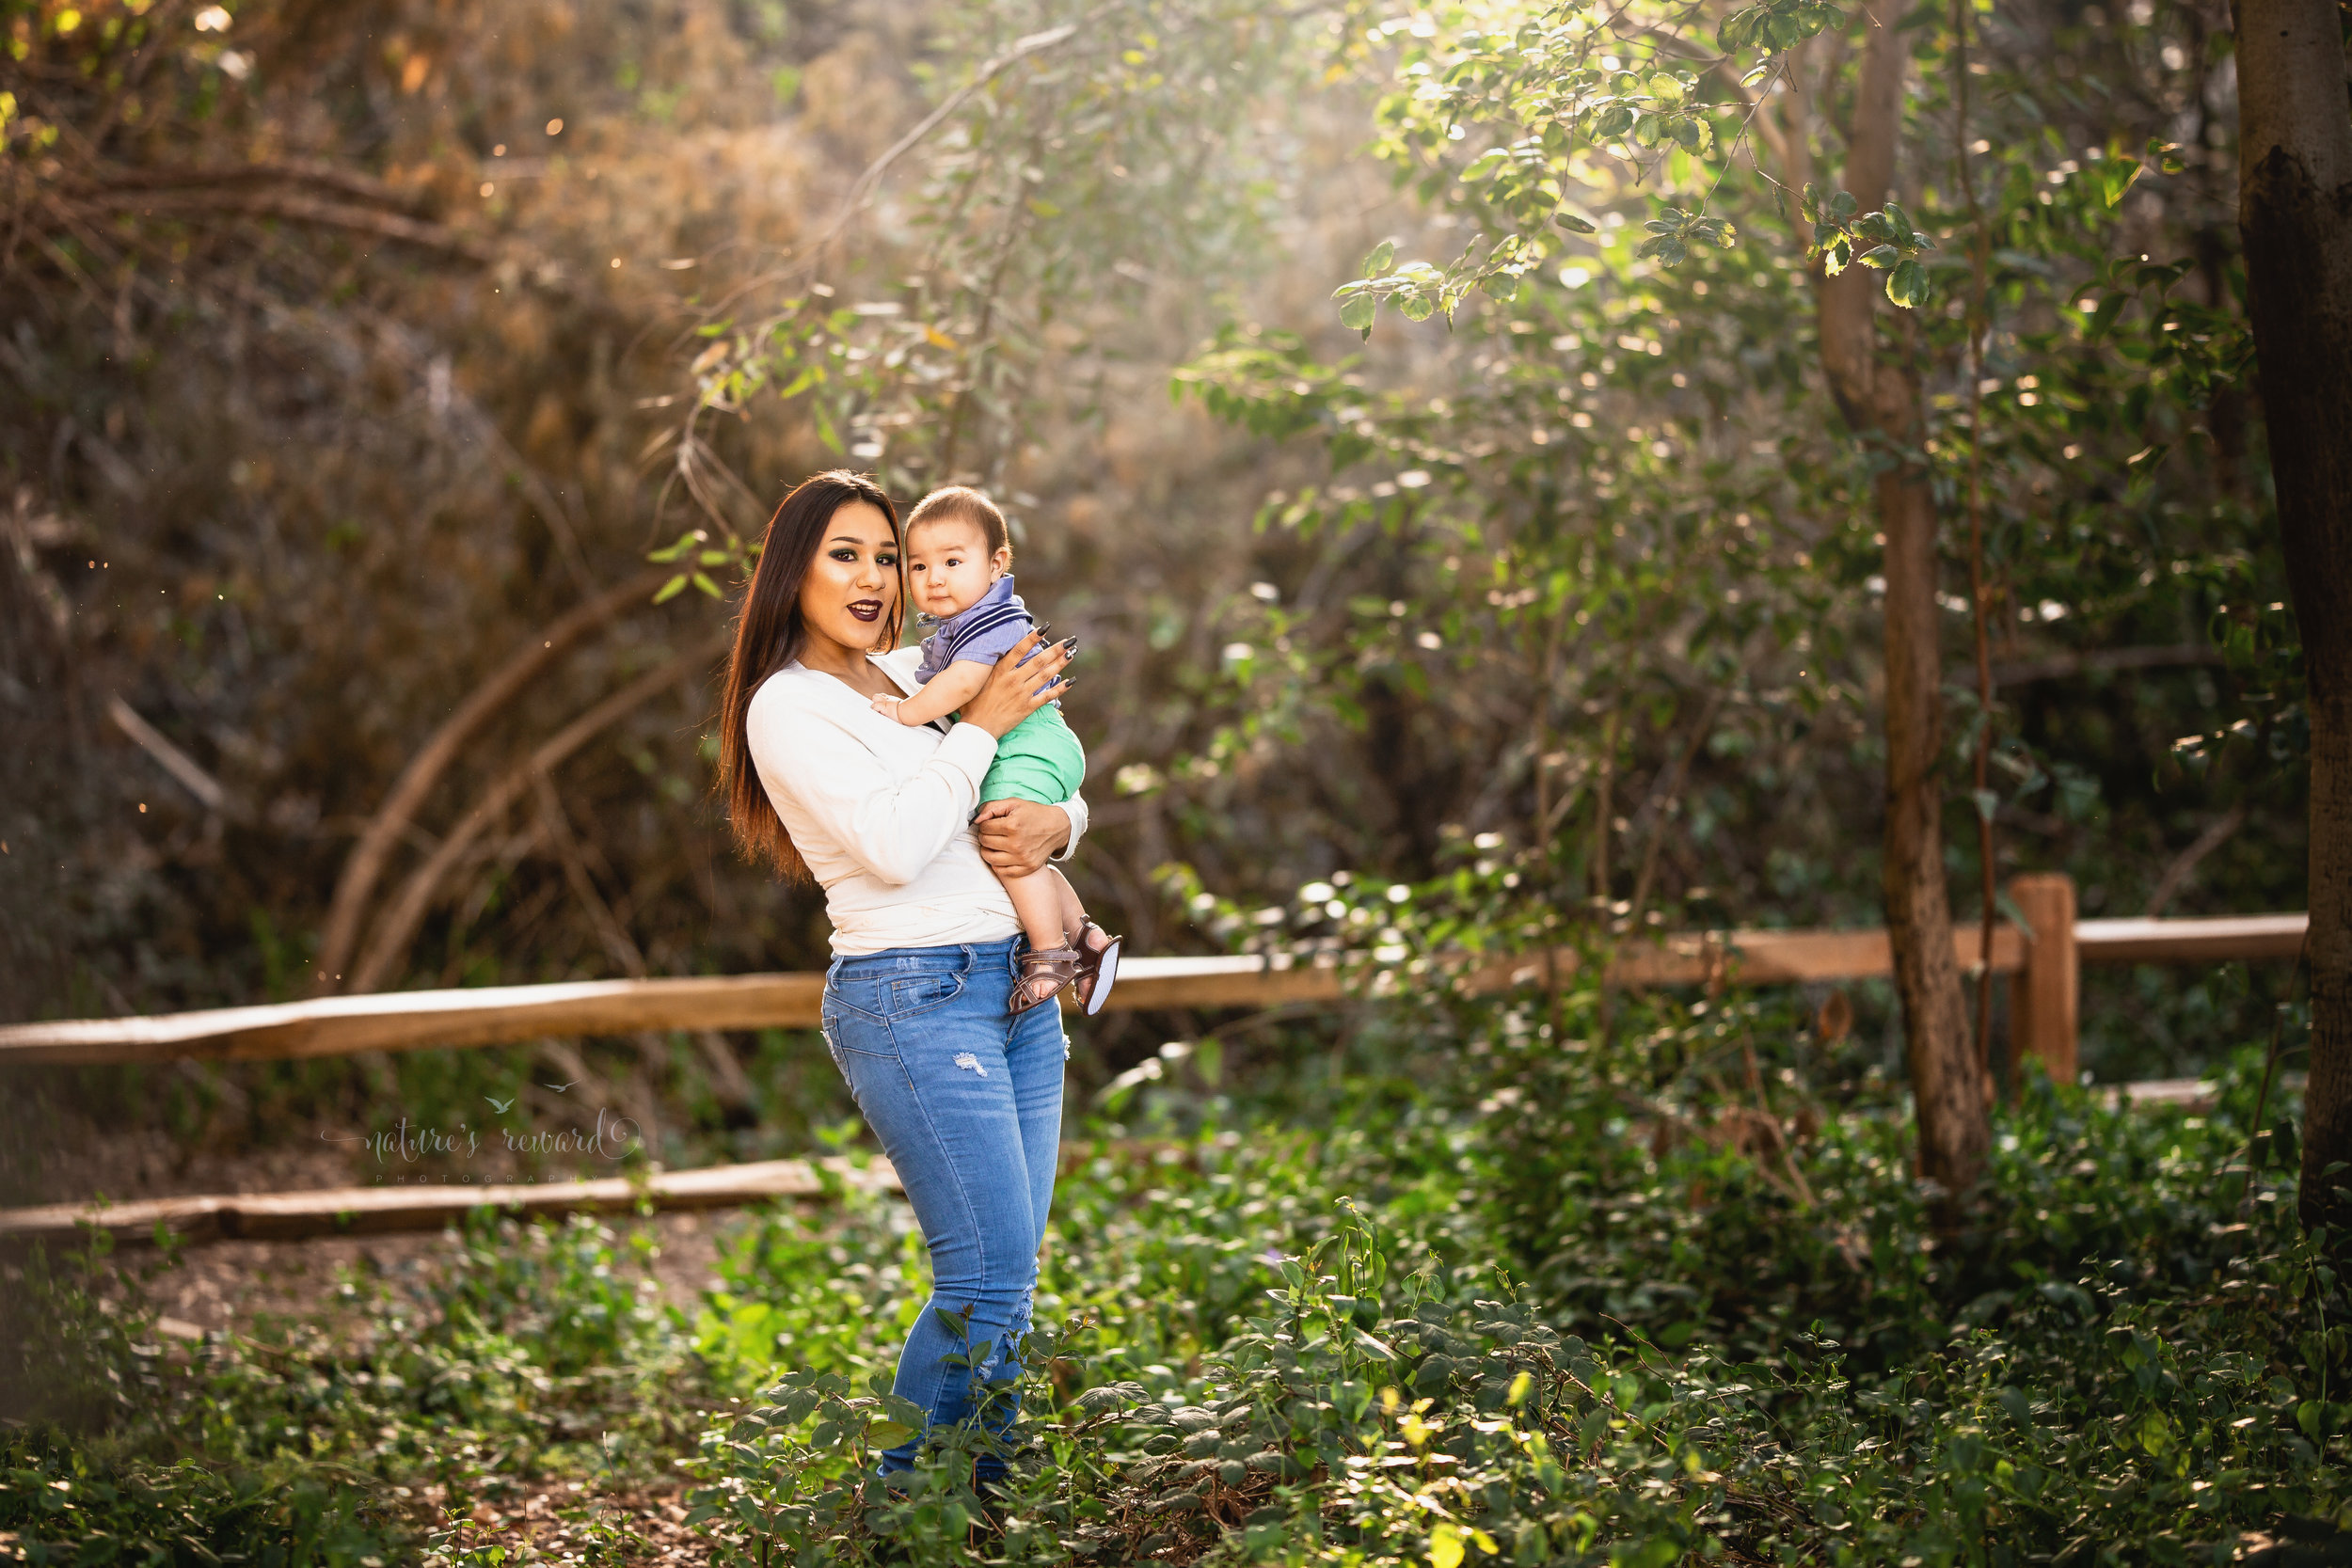 Mommy and son in the park in this lovely portrait by Nature's Reward Photography